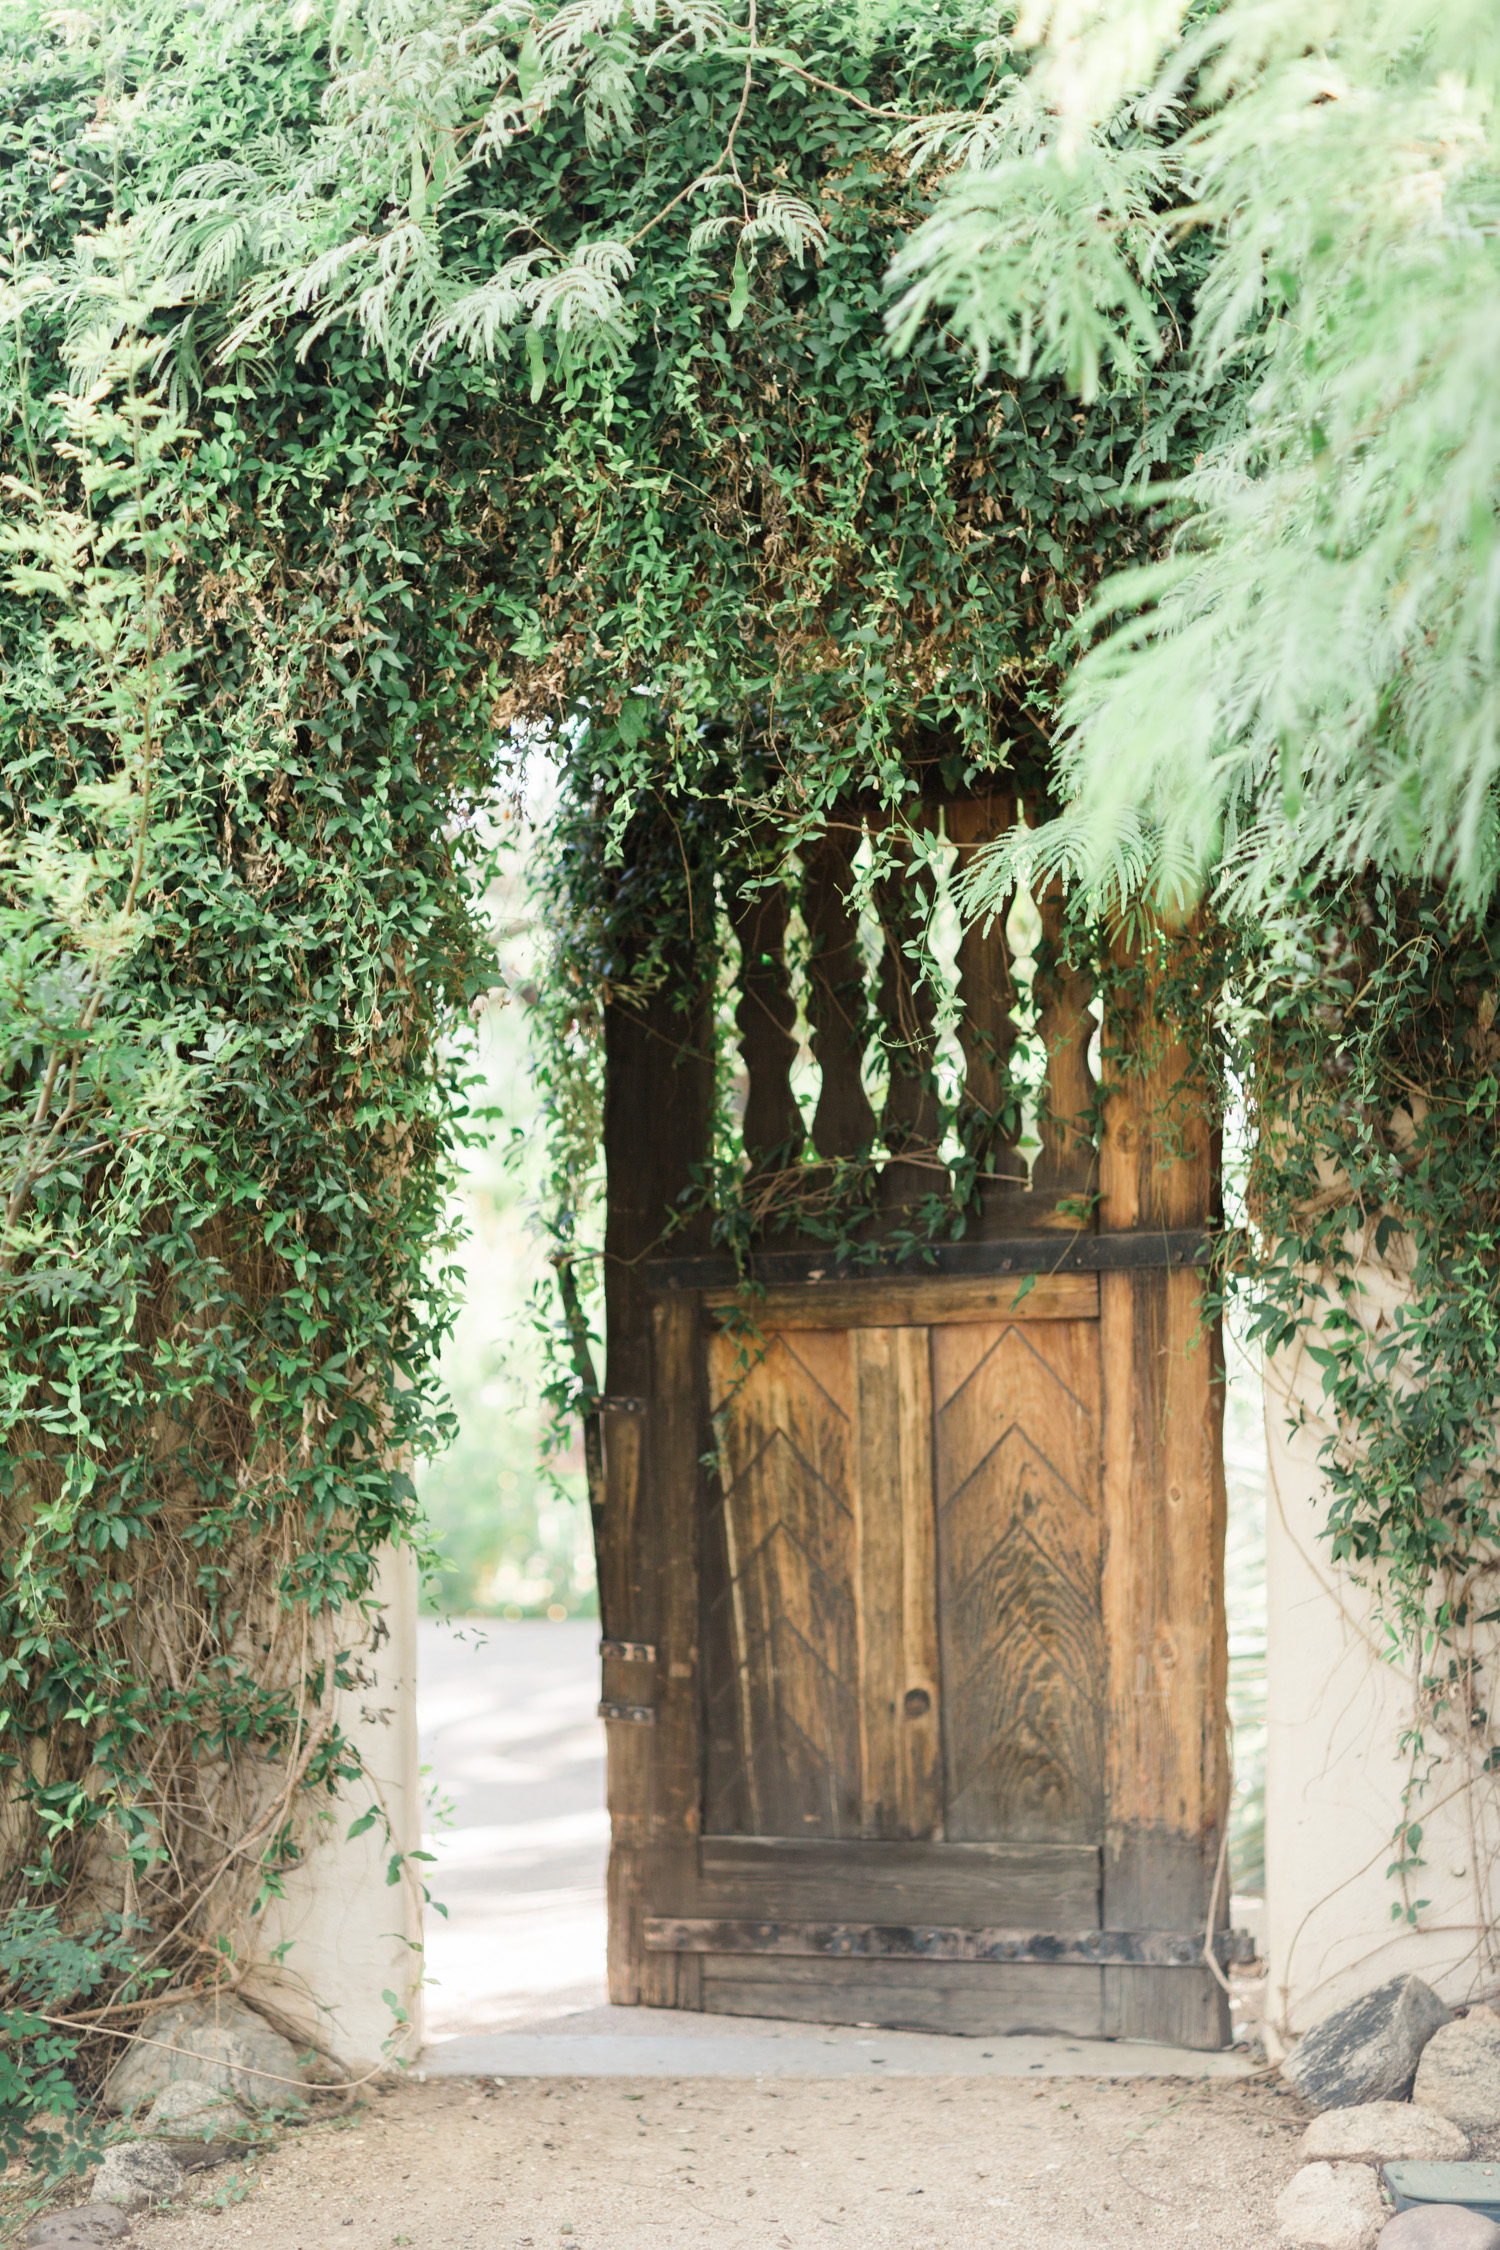 Old wooden door covered in vines at Tohono Chul Gardens